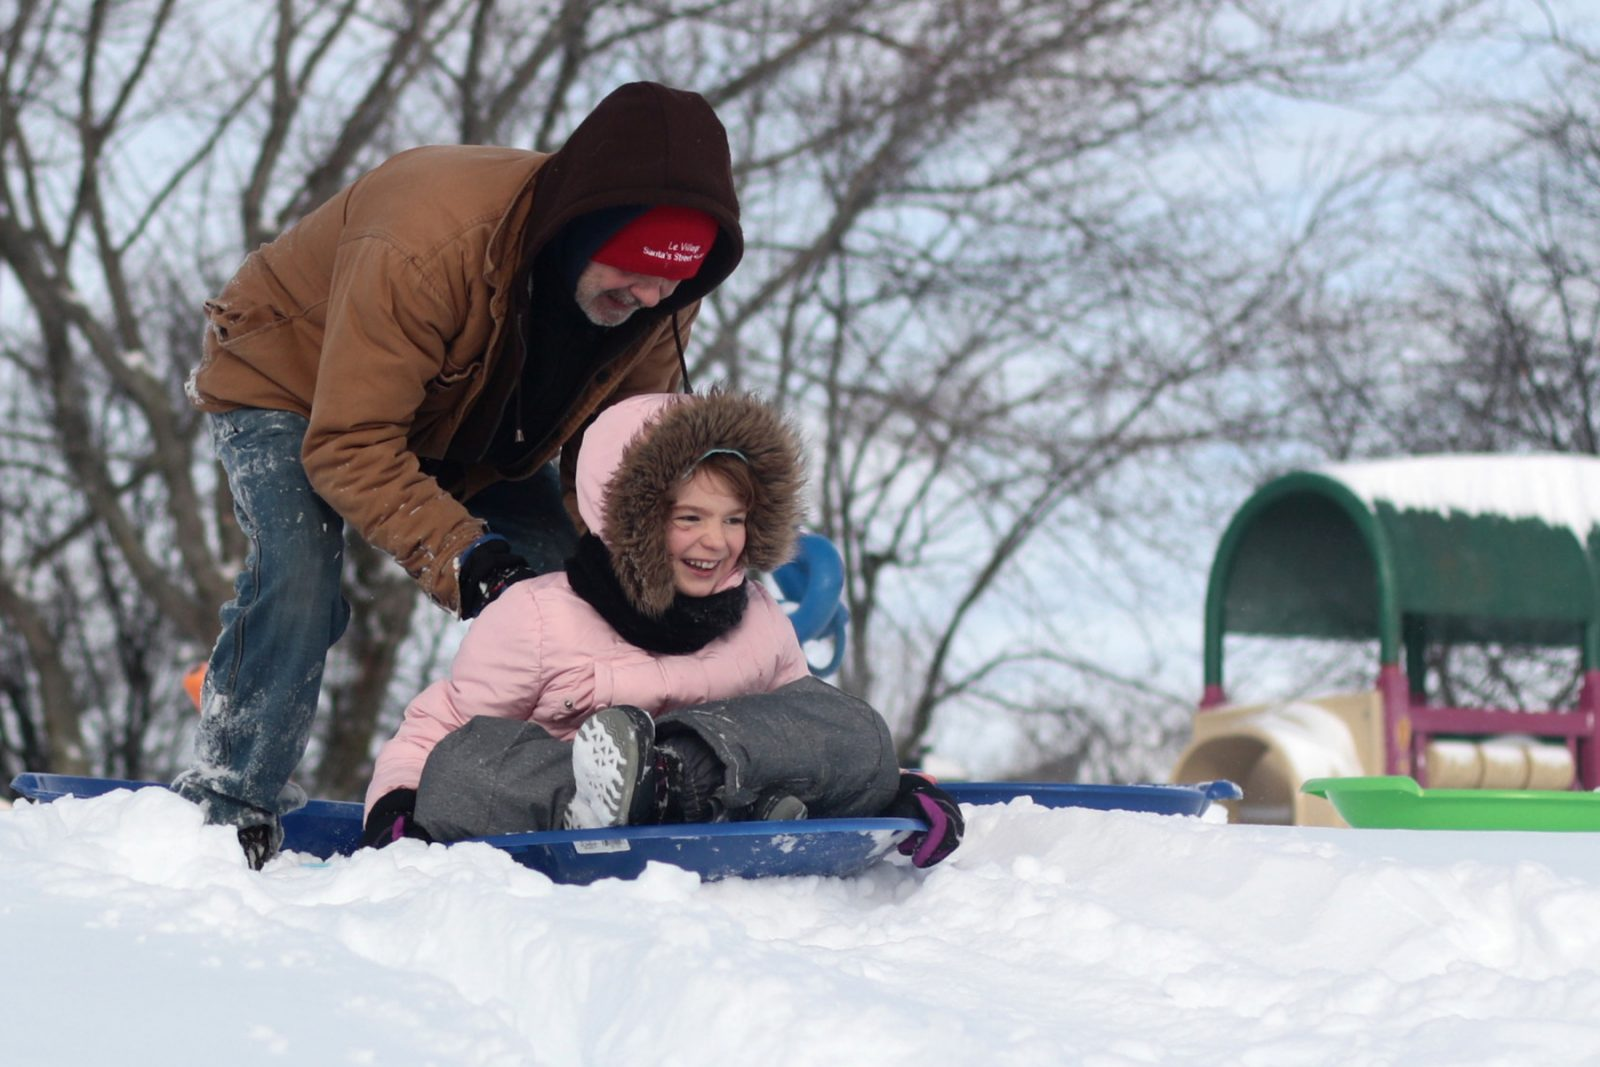 Council passes $60K winter recreation plan for Lamoureux Park